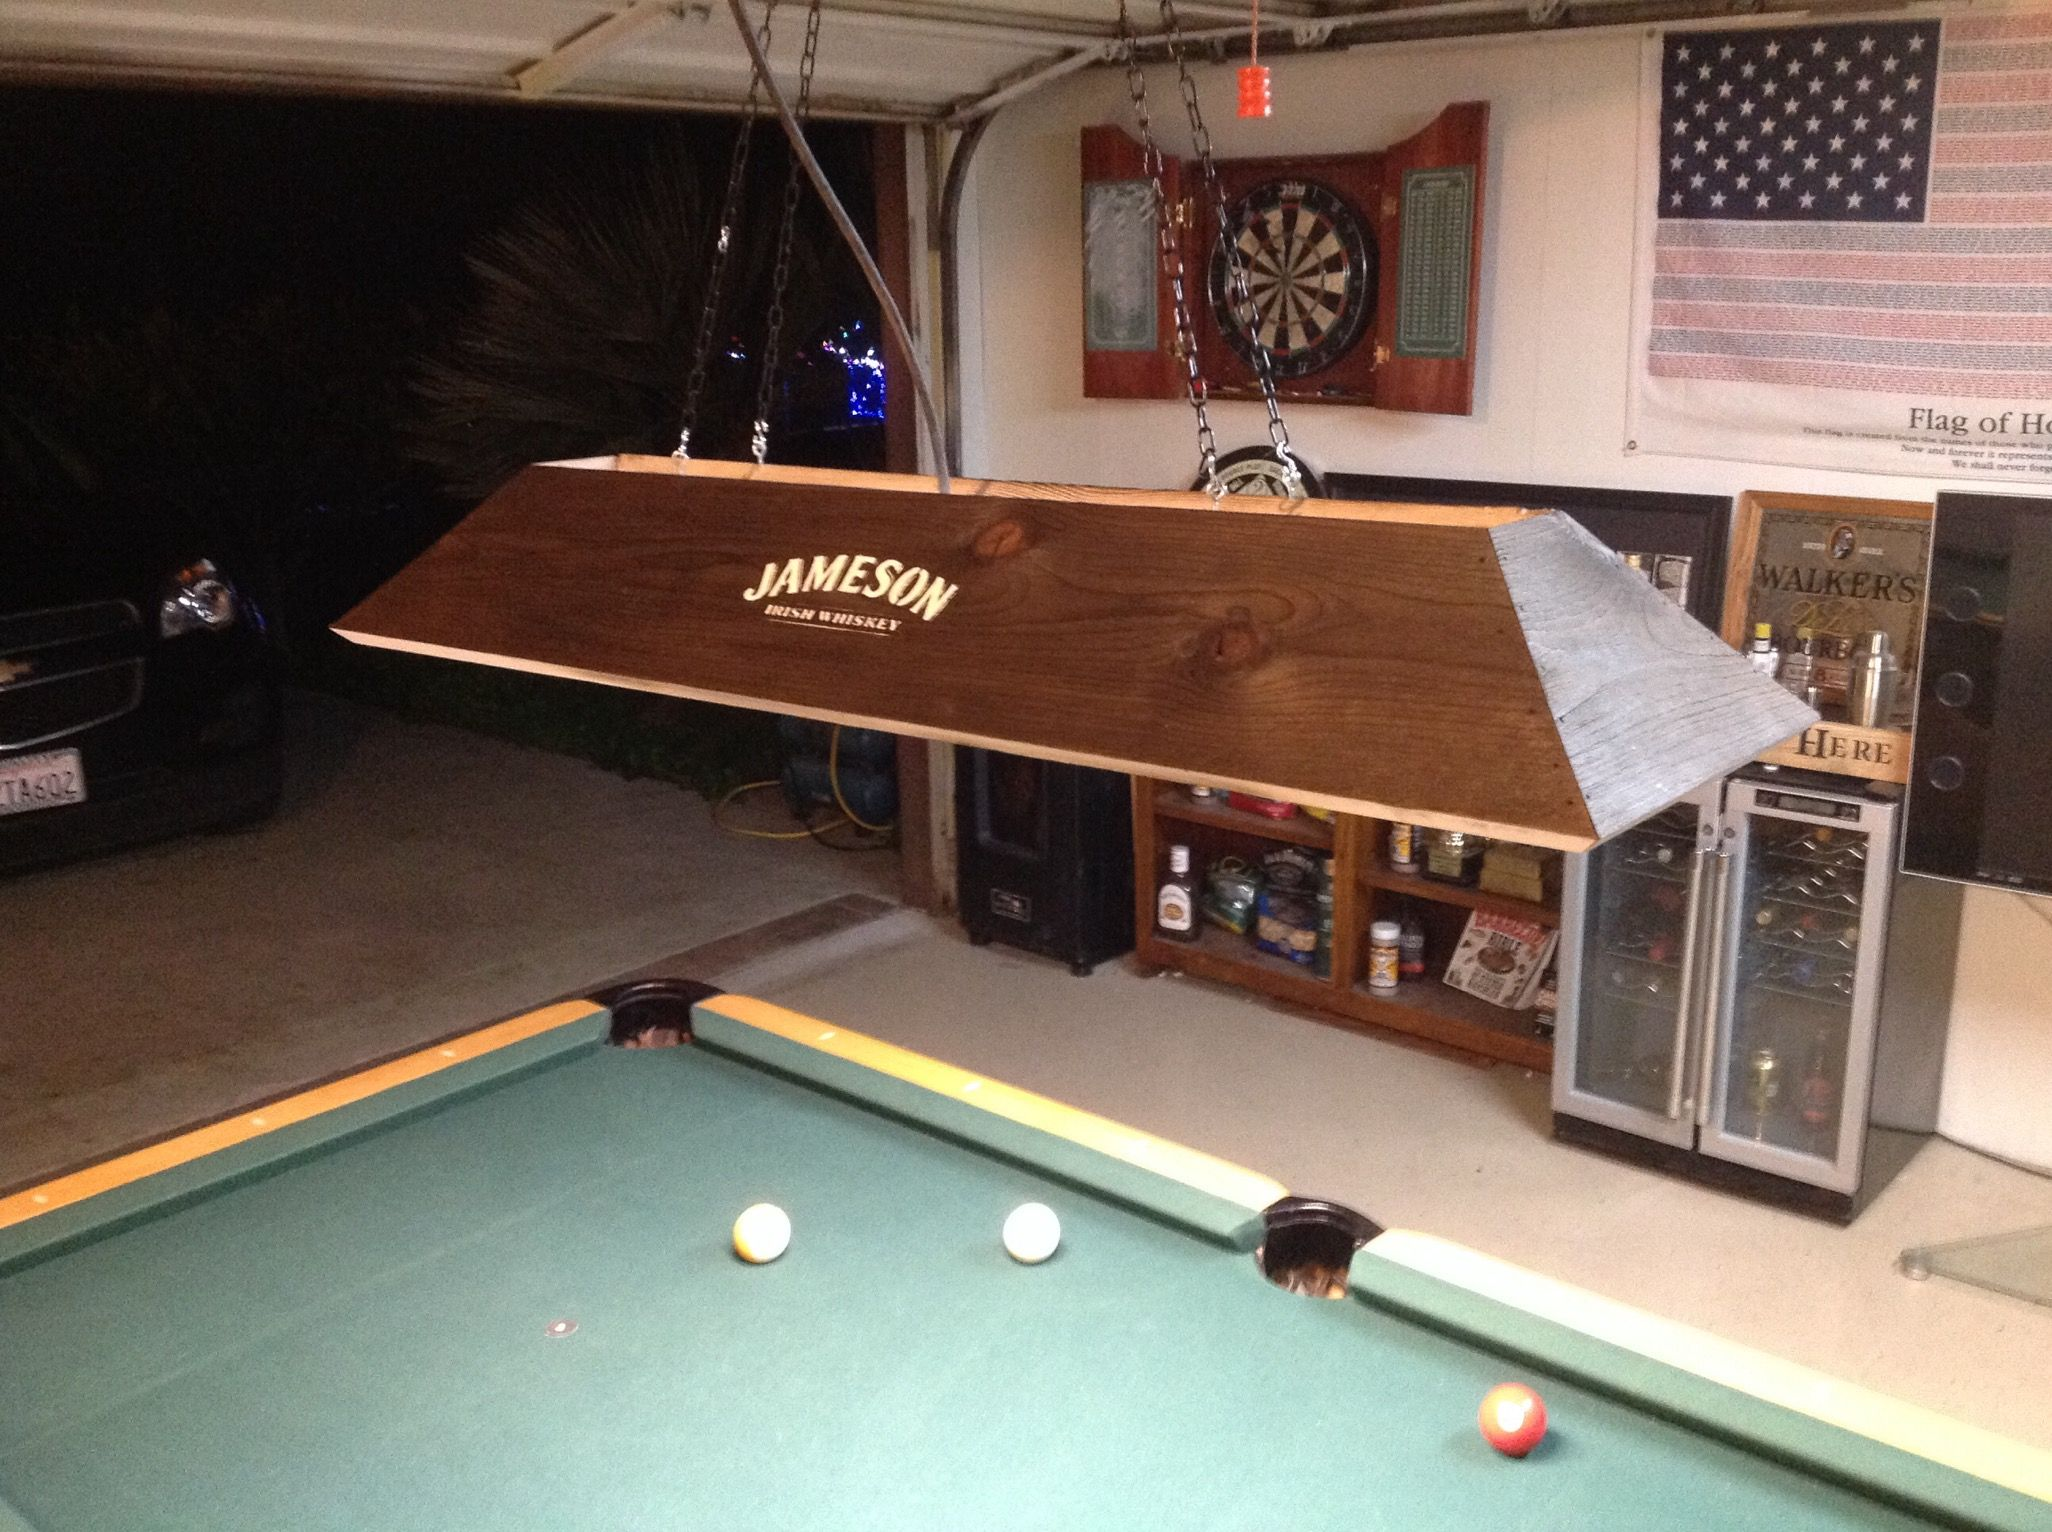 Kitchen Island Chairs With Backs Jameson Irish Whiskey Pool Table Light | Mancave Lights